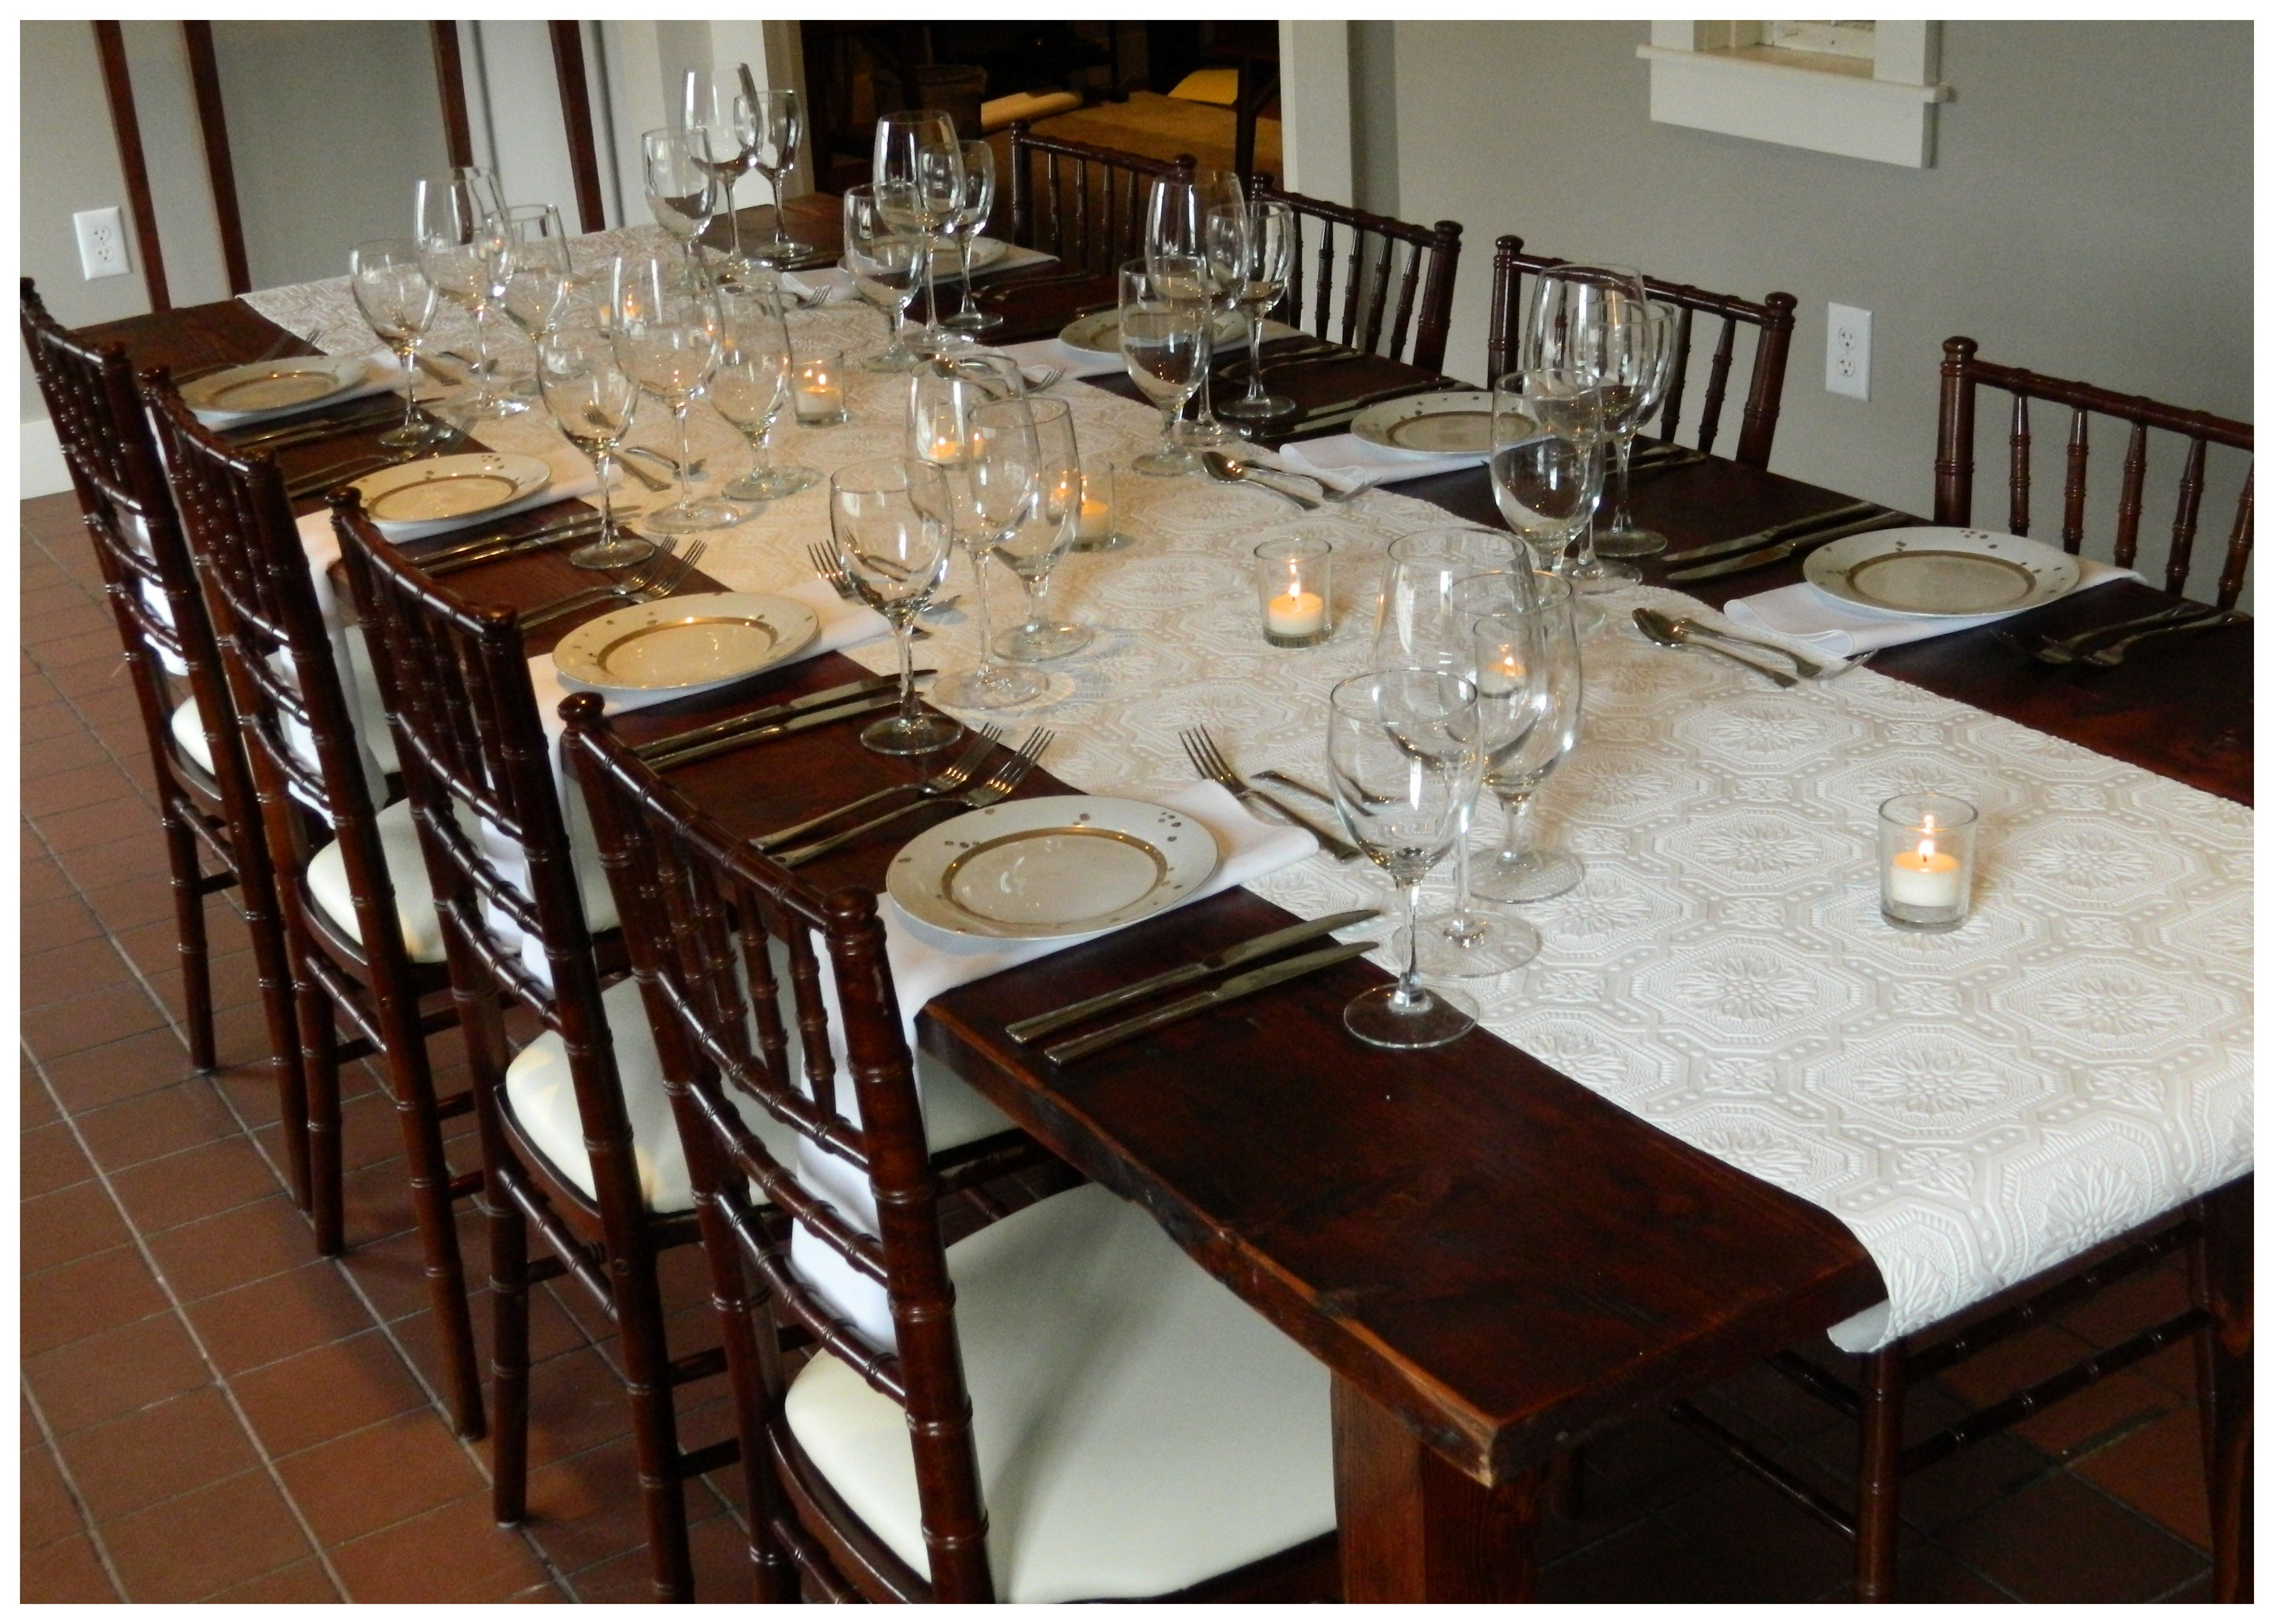 This Set Up Includes Our Rustic Farm Table Set For 8